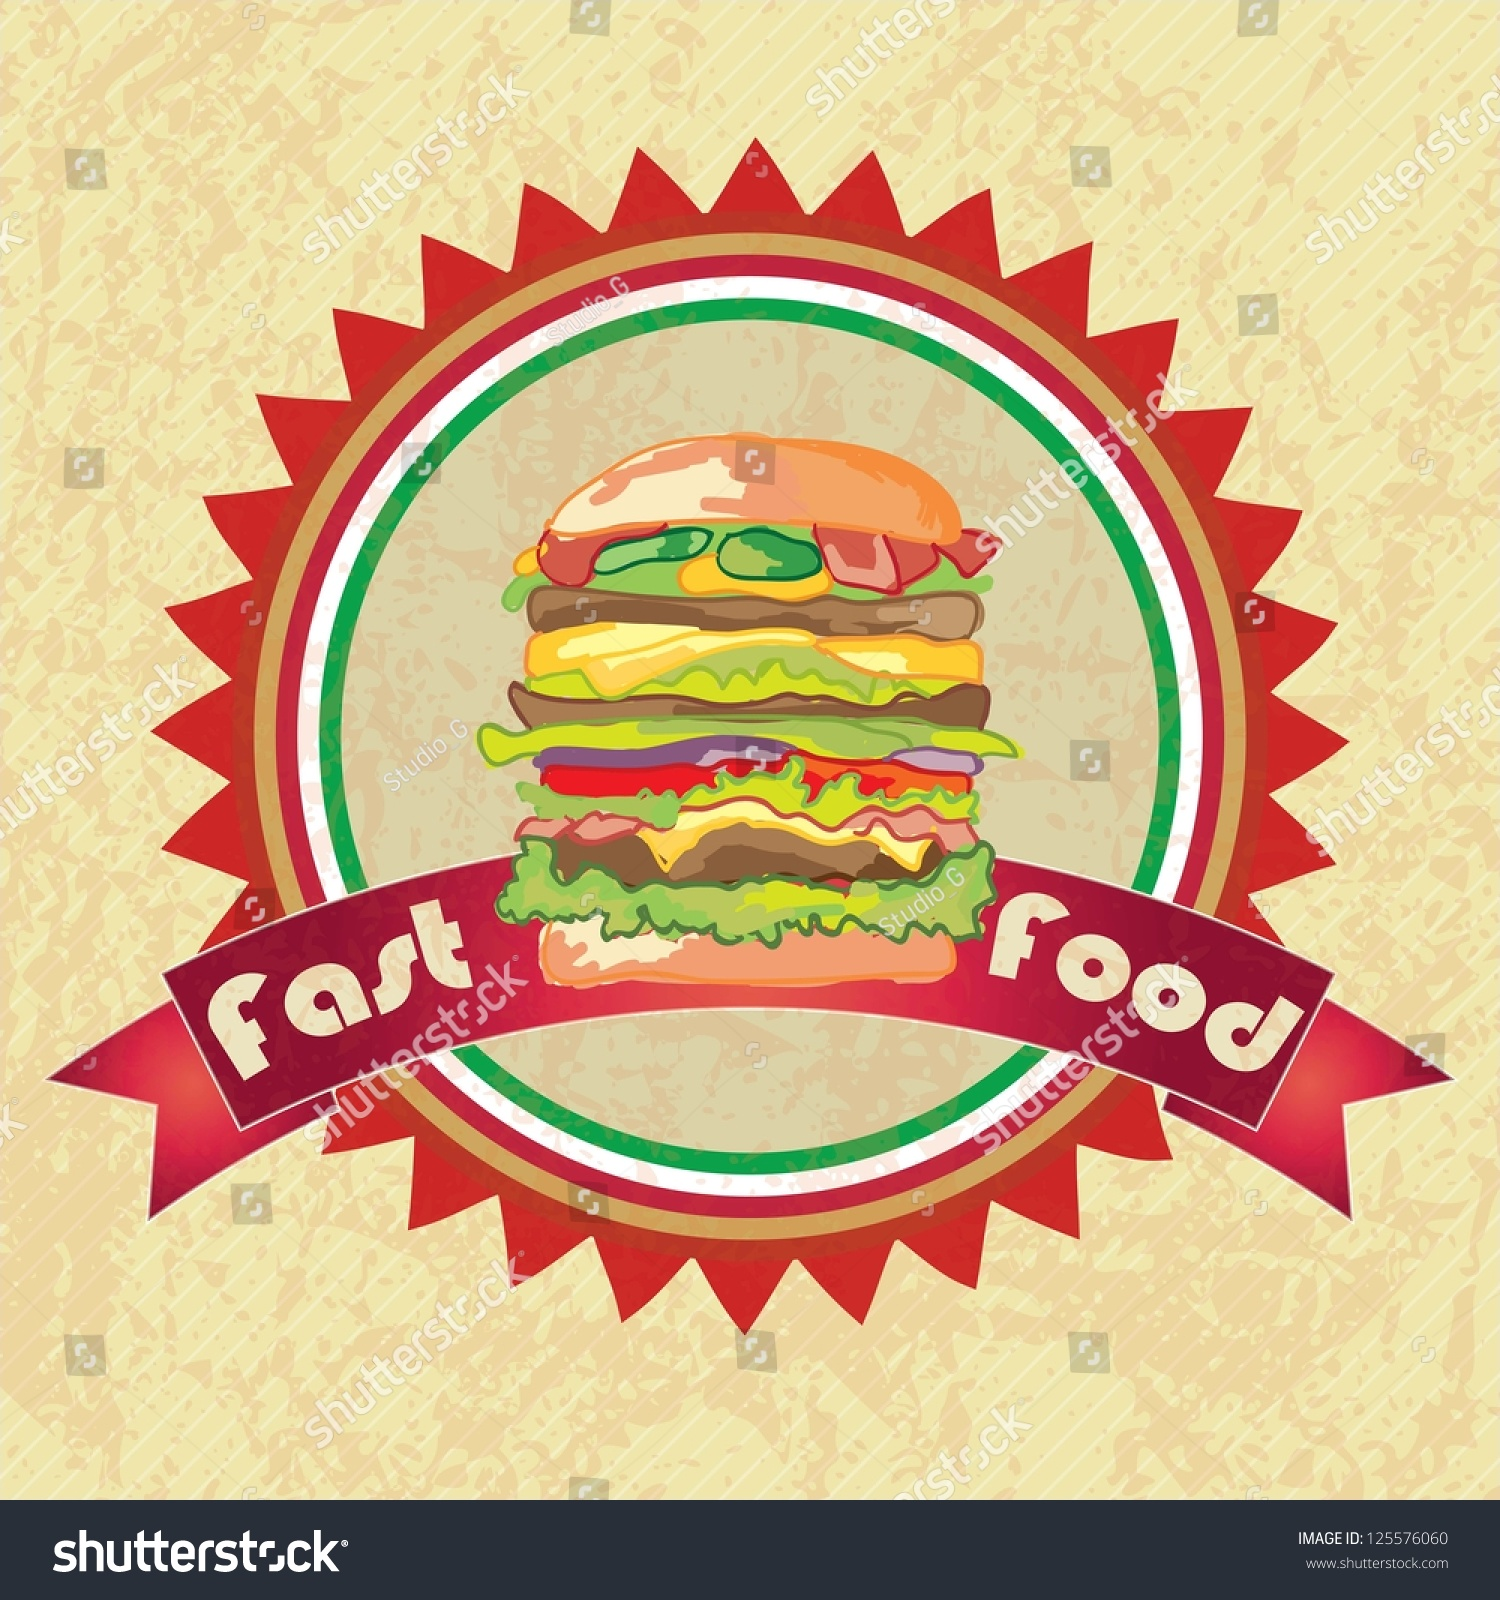 Fast food research paper